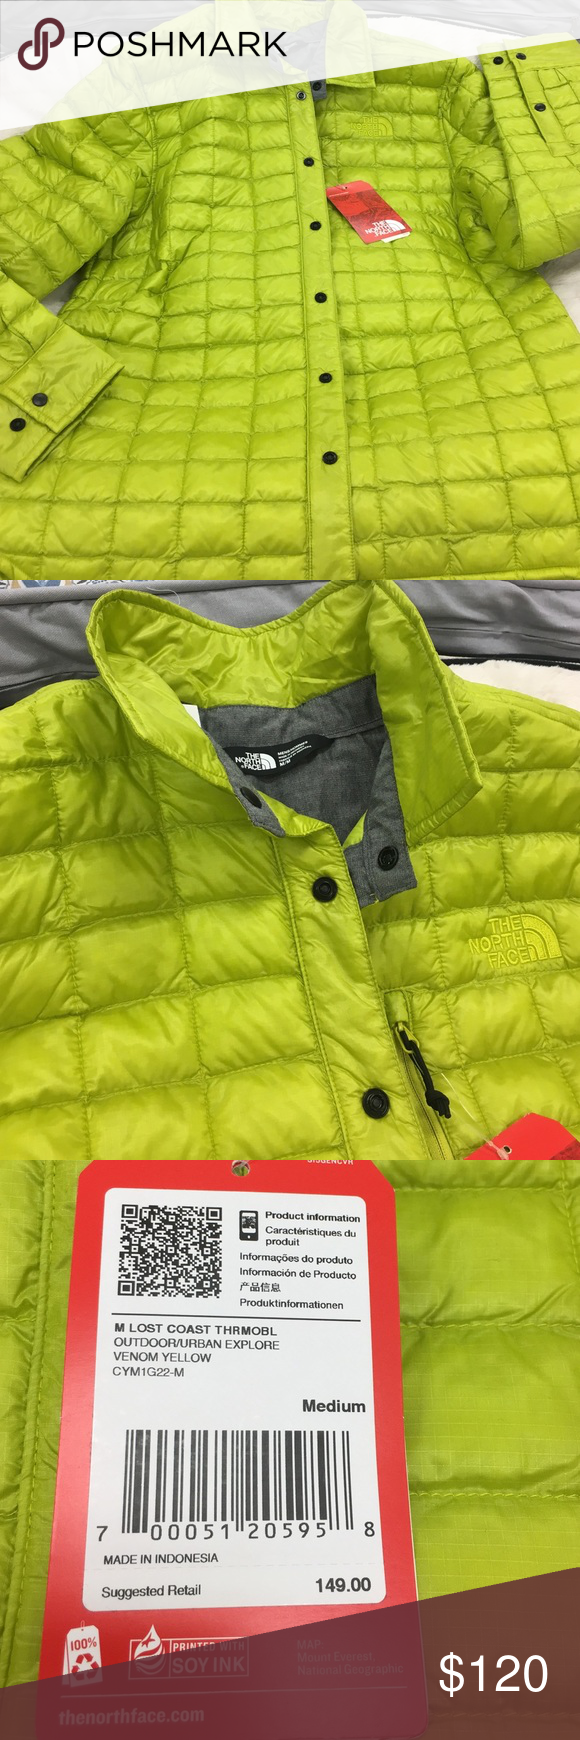 Nwt The North Face Lost Coast Lime Green Snap Jacket With A Collar The North Face Jackets Coats Puffers Clothes Design North Face Jacket Fashion Design [ 1740 x 580 Pixel ]